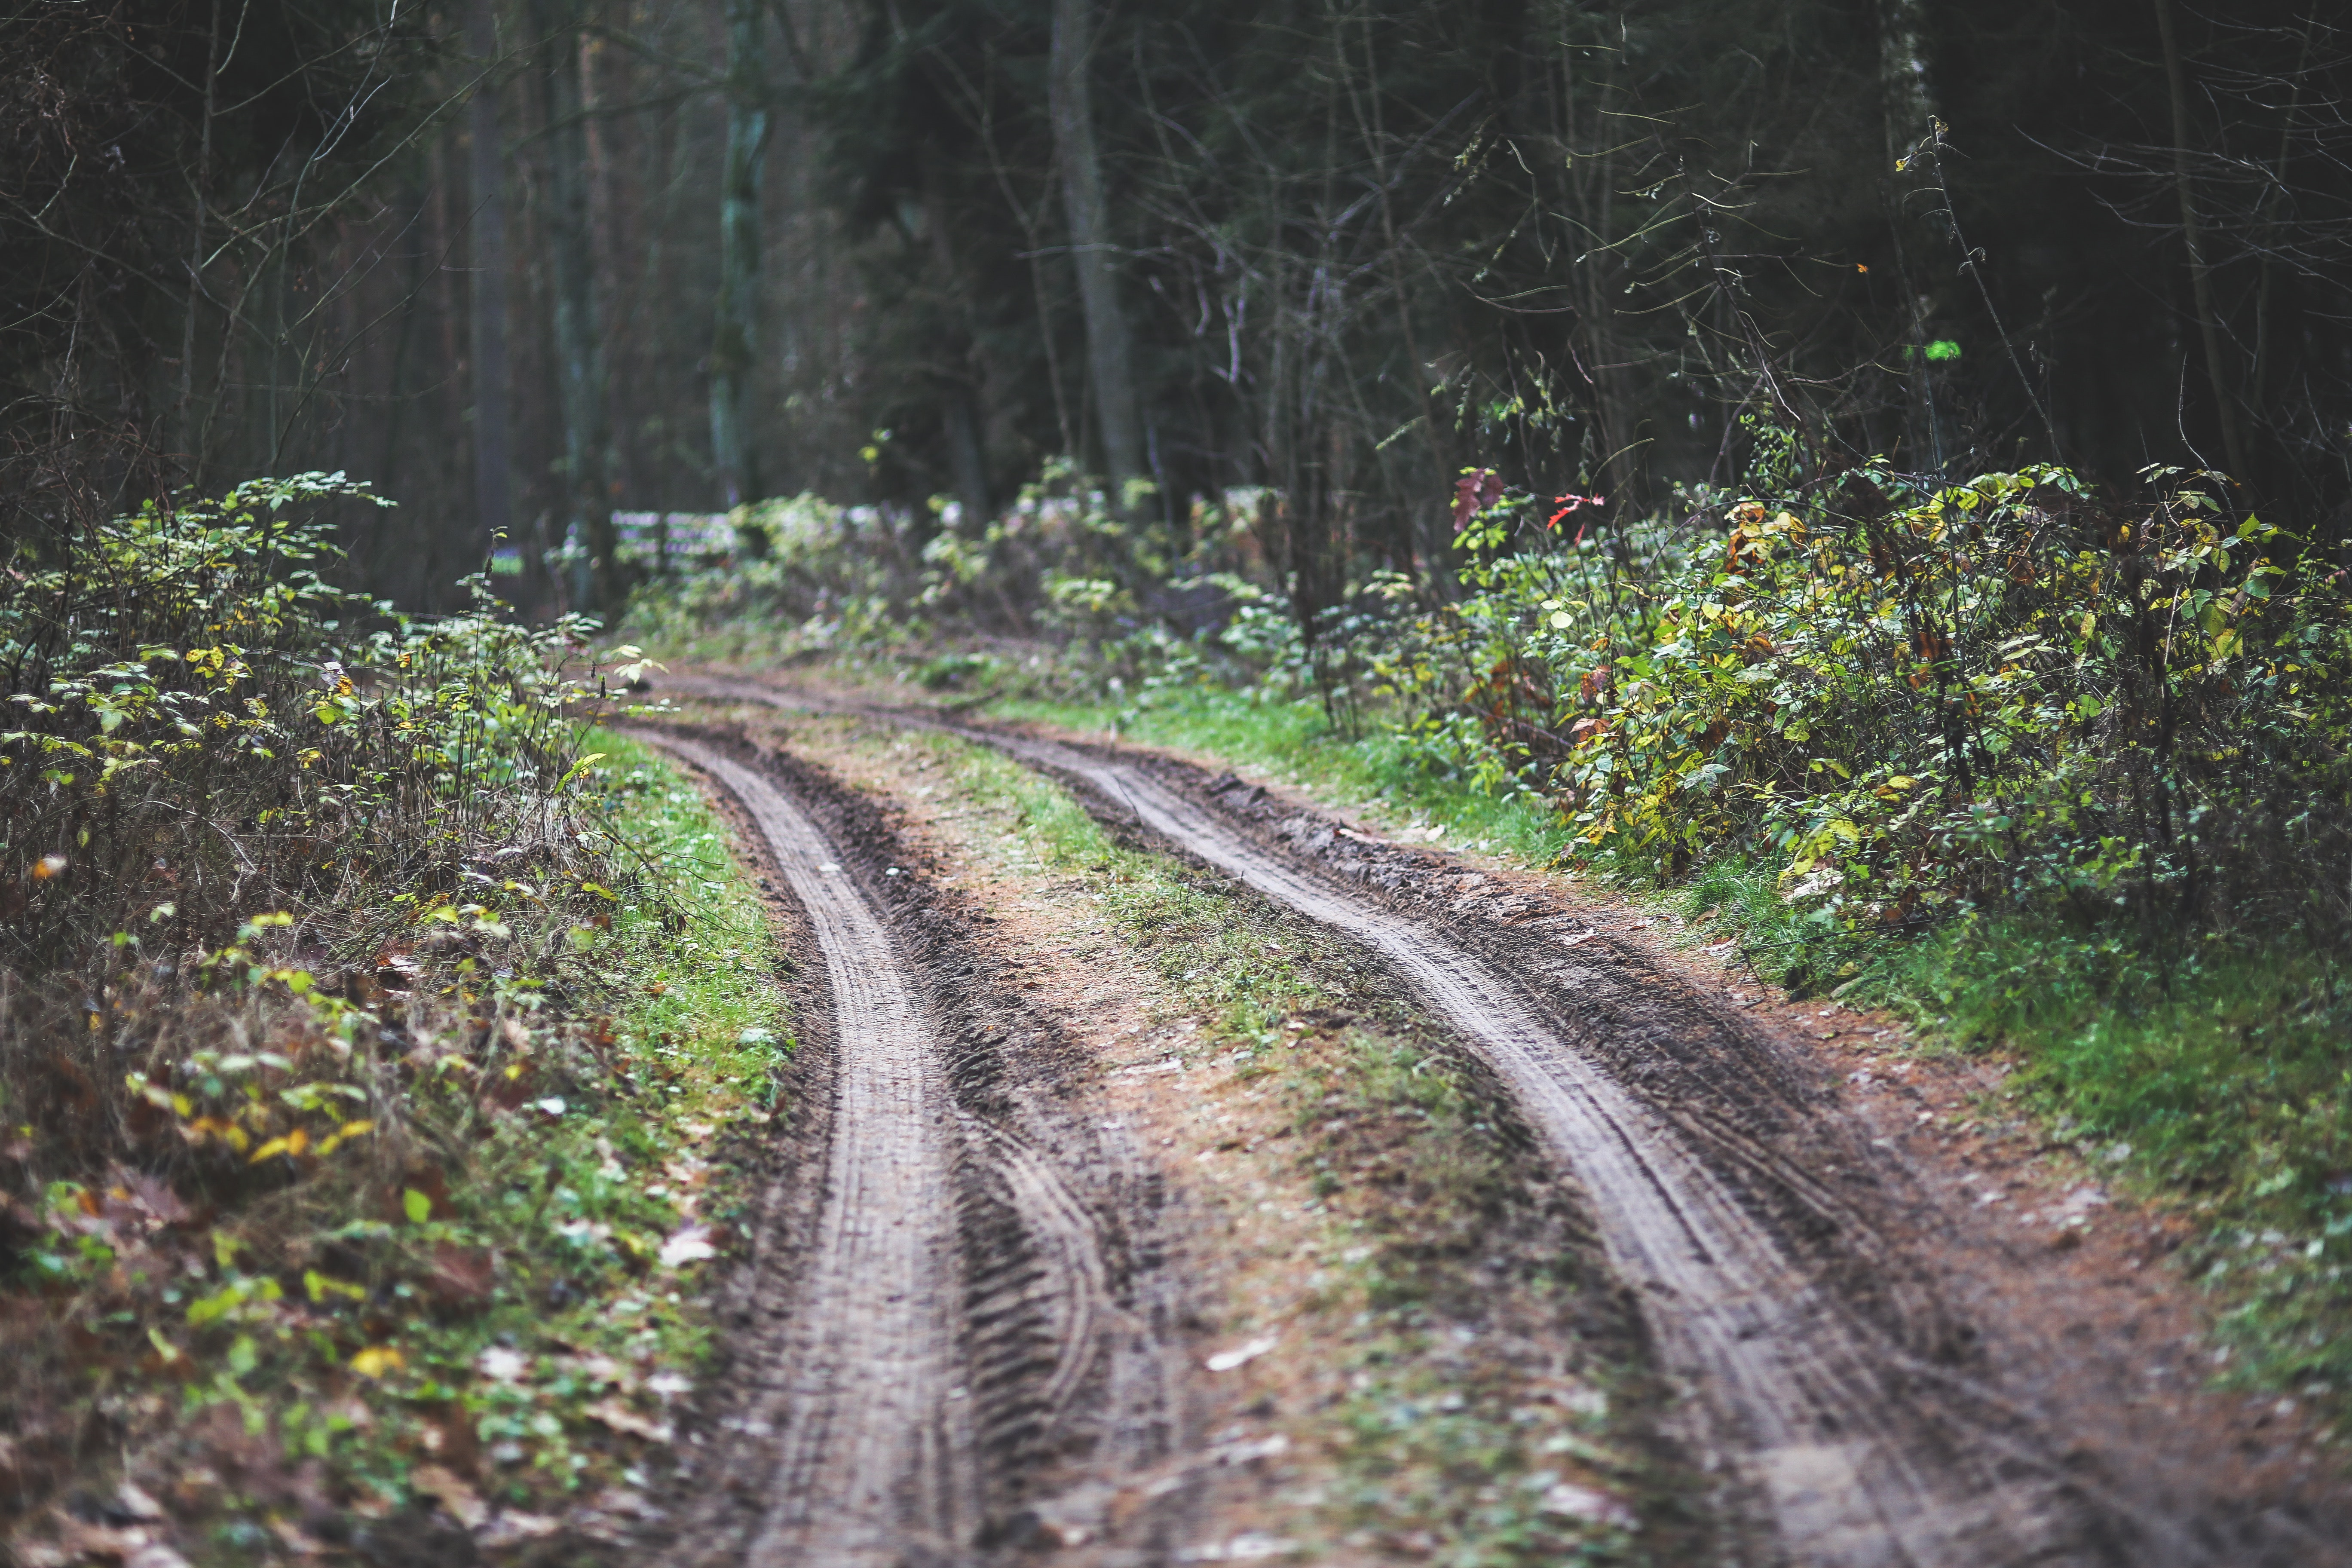 Forest road, Dirty, Forest, Mud, Off-road, HQ Photo